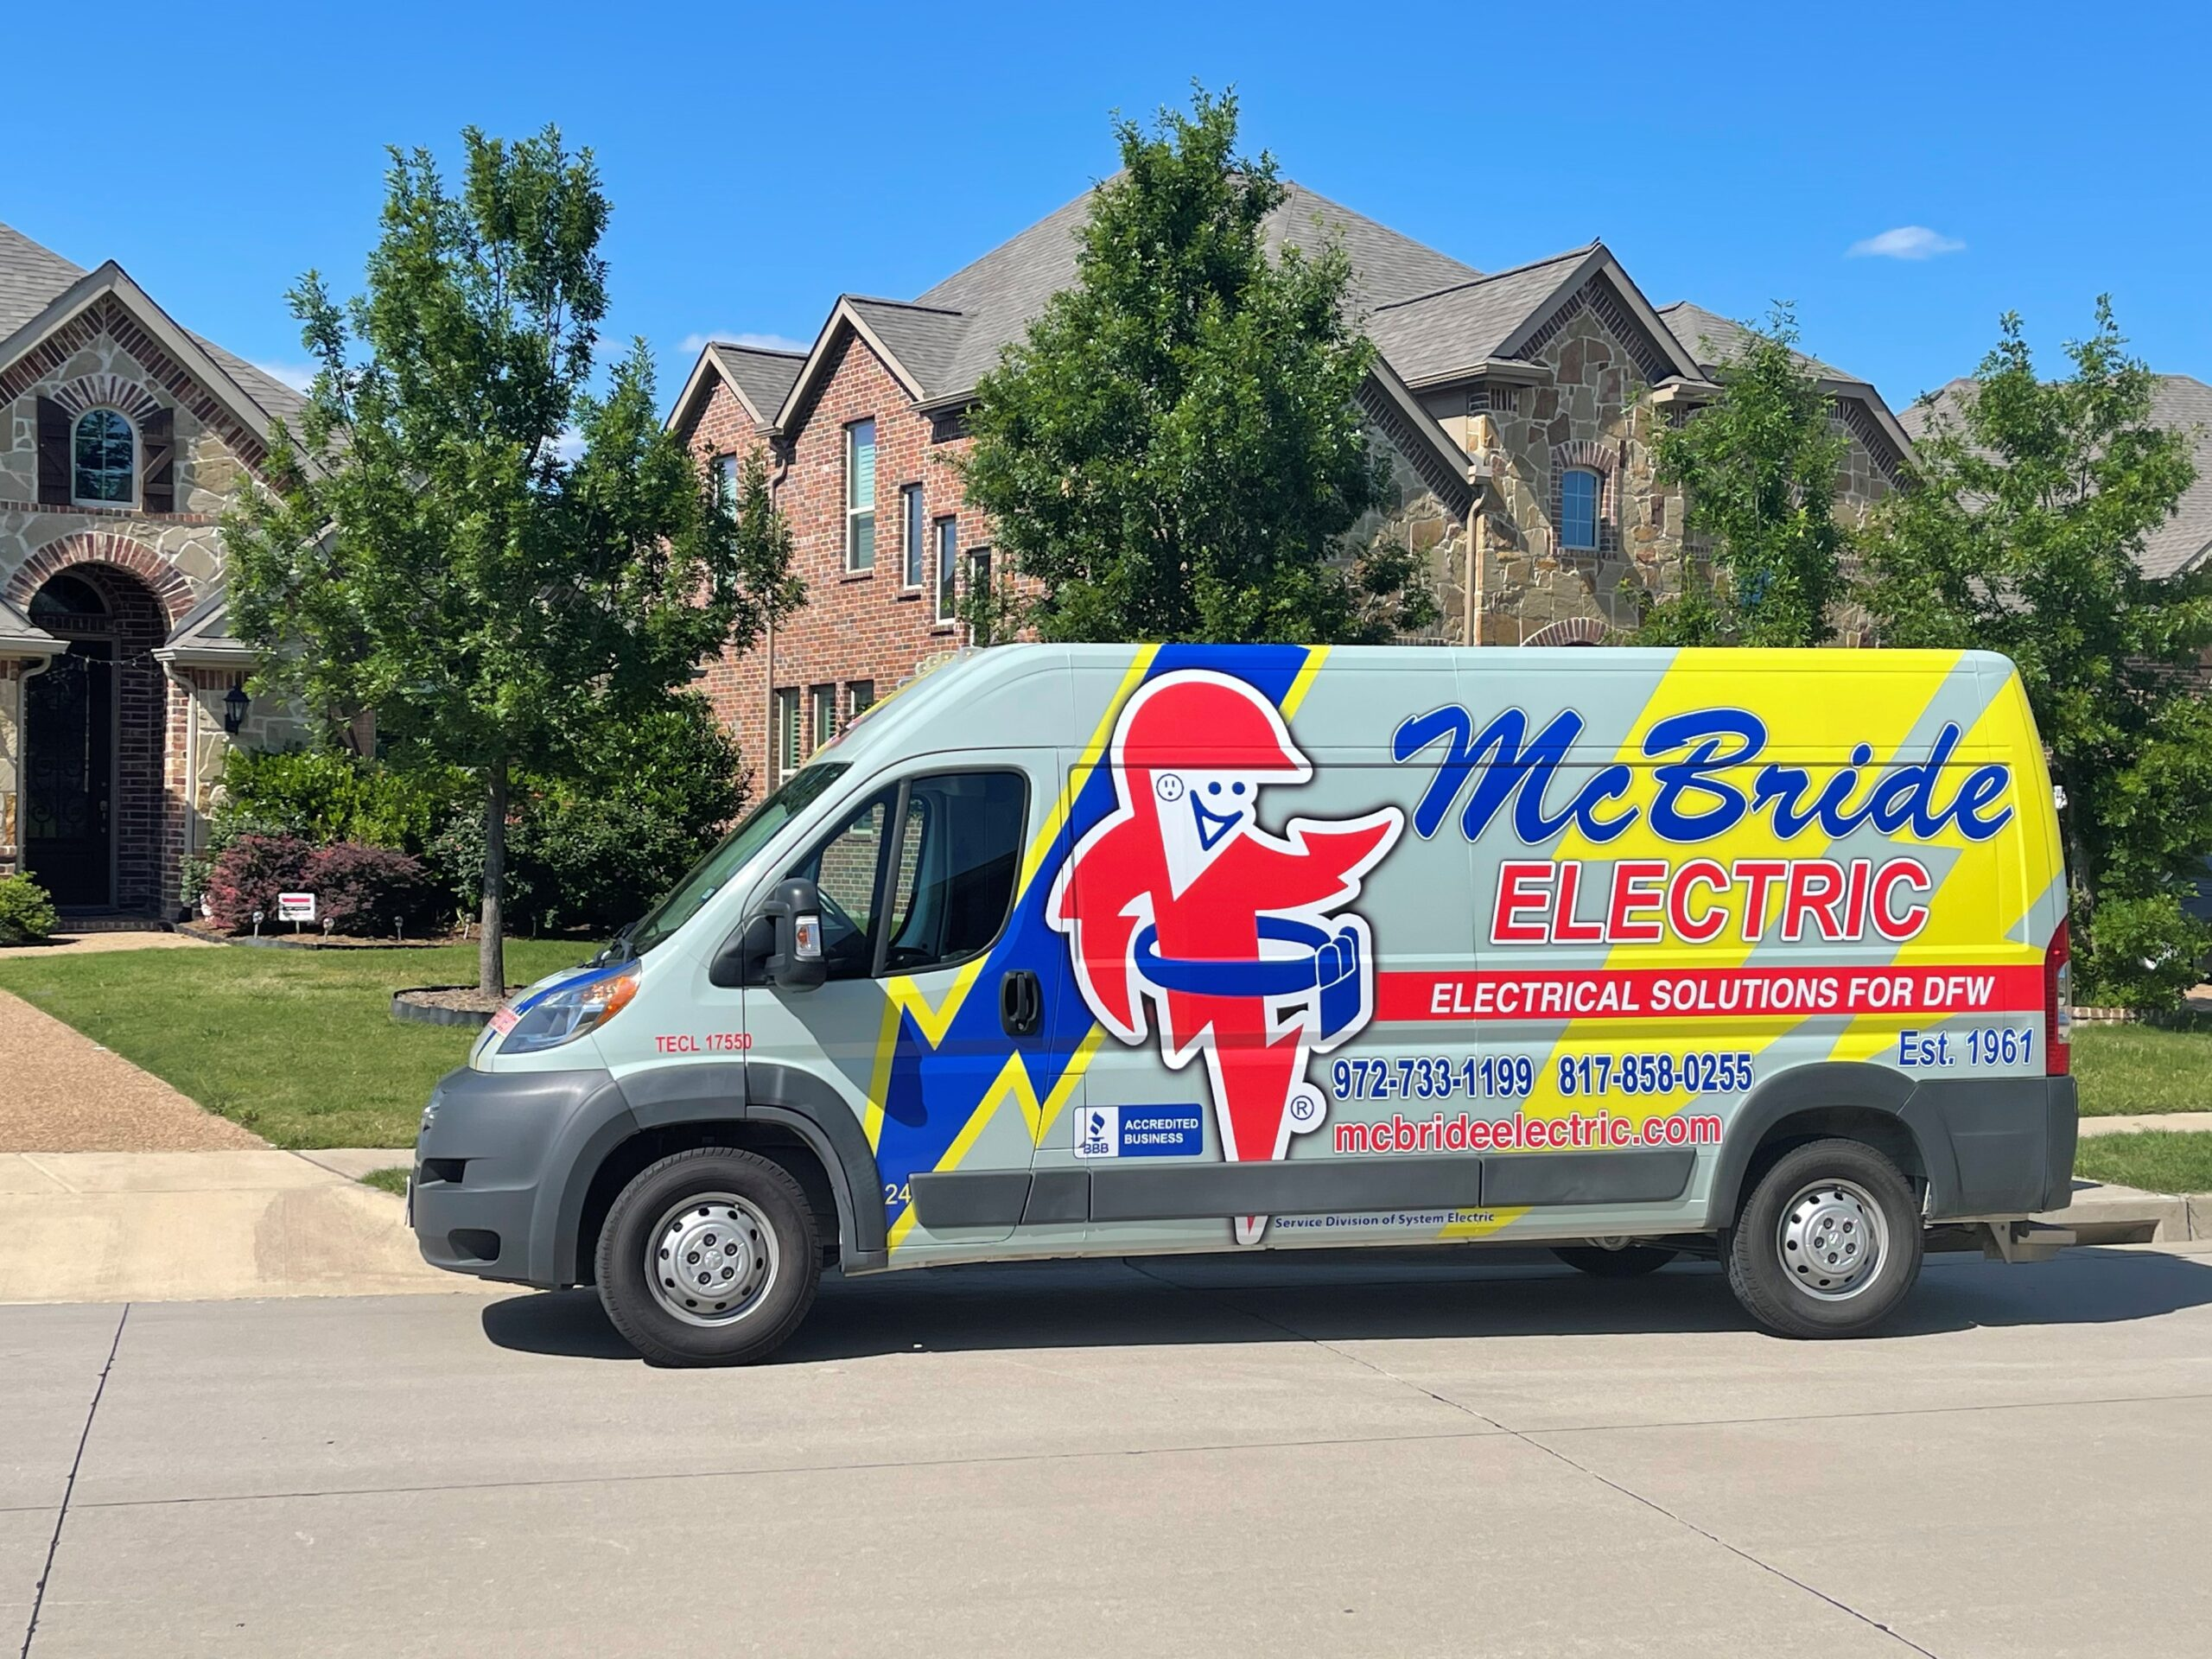 Residential Electric and Lighting Services by McBride Electric Serving North Texas Area including Dallas TX, Plano TX, and Fort Worth TX